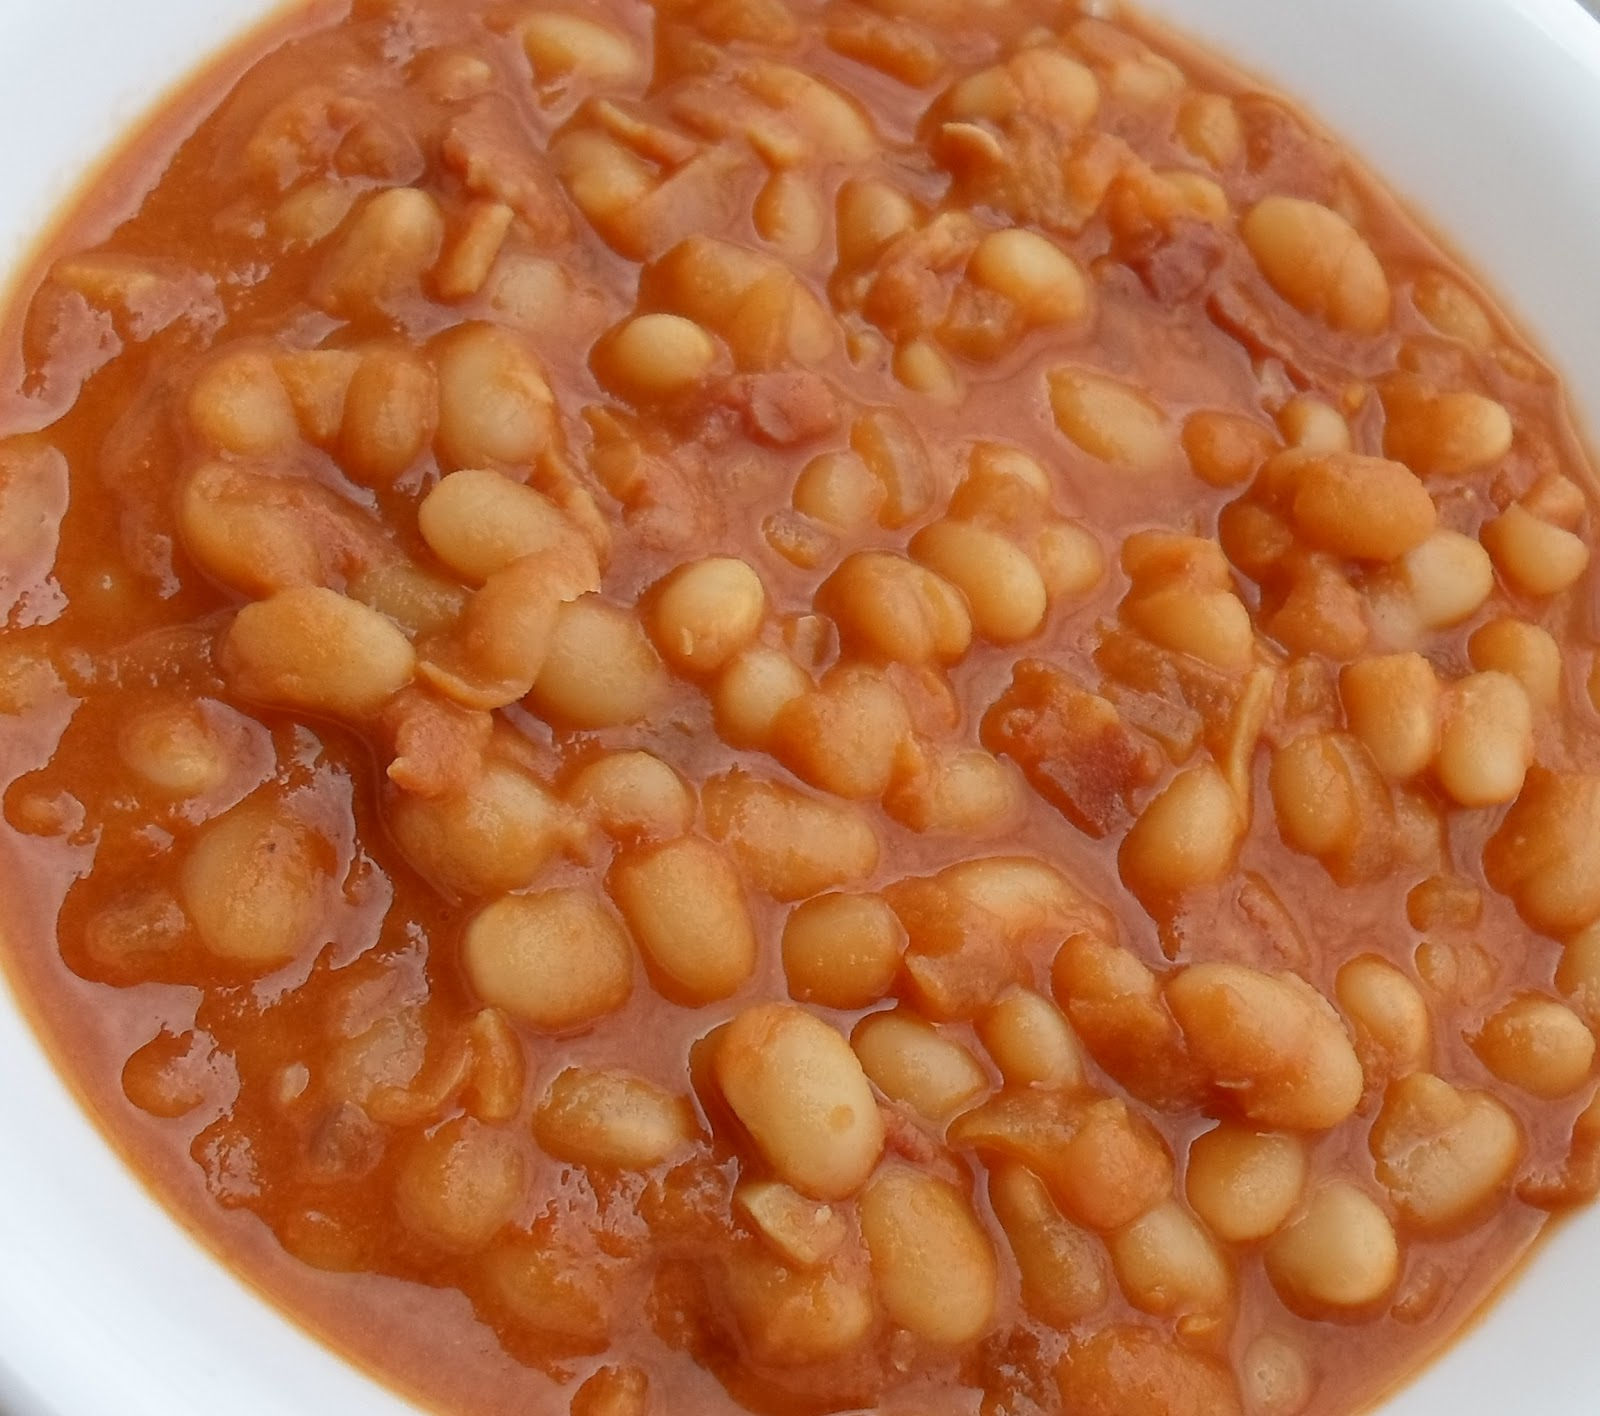 Happier Than A Pig In Mud: Pressure Cooked Boston Baked Beans